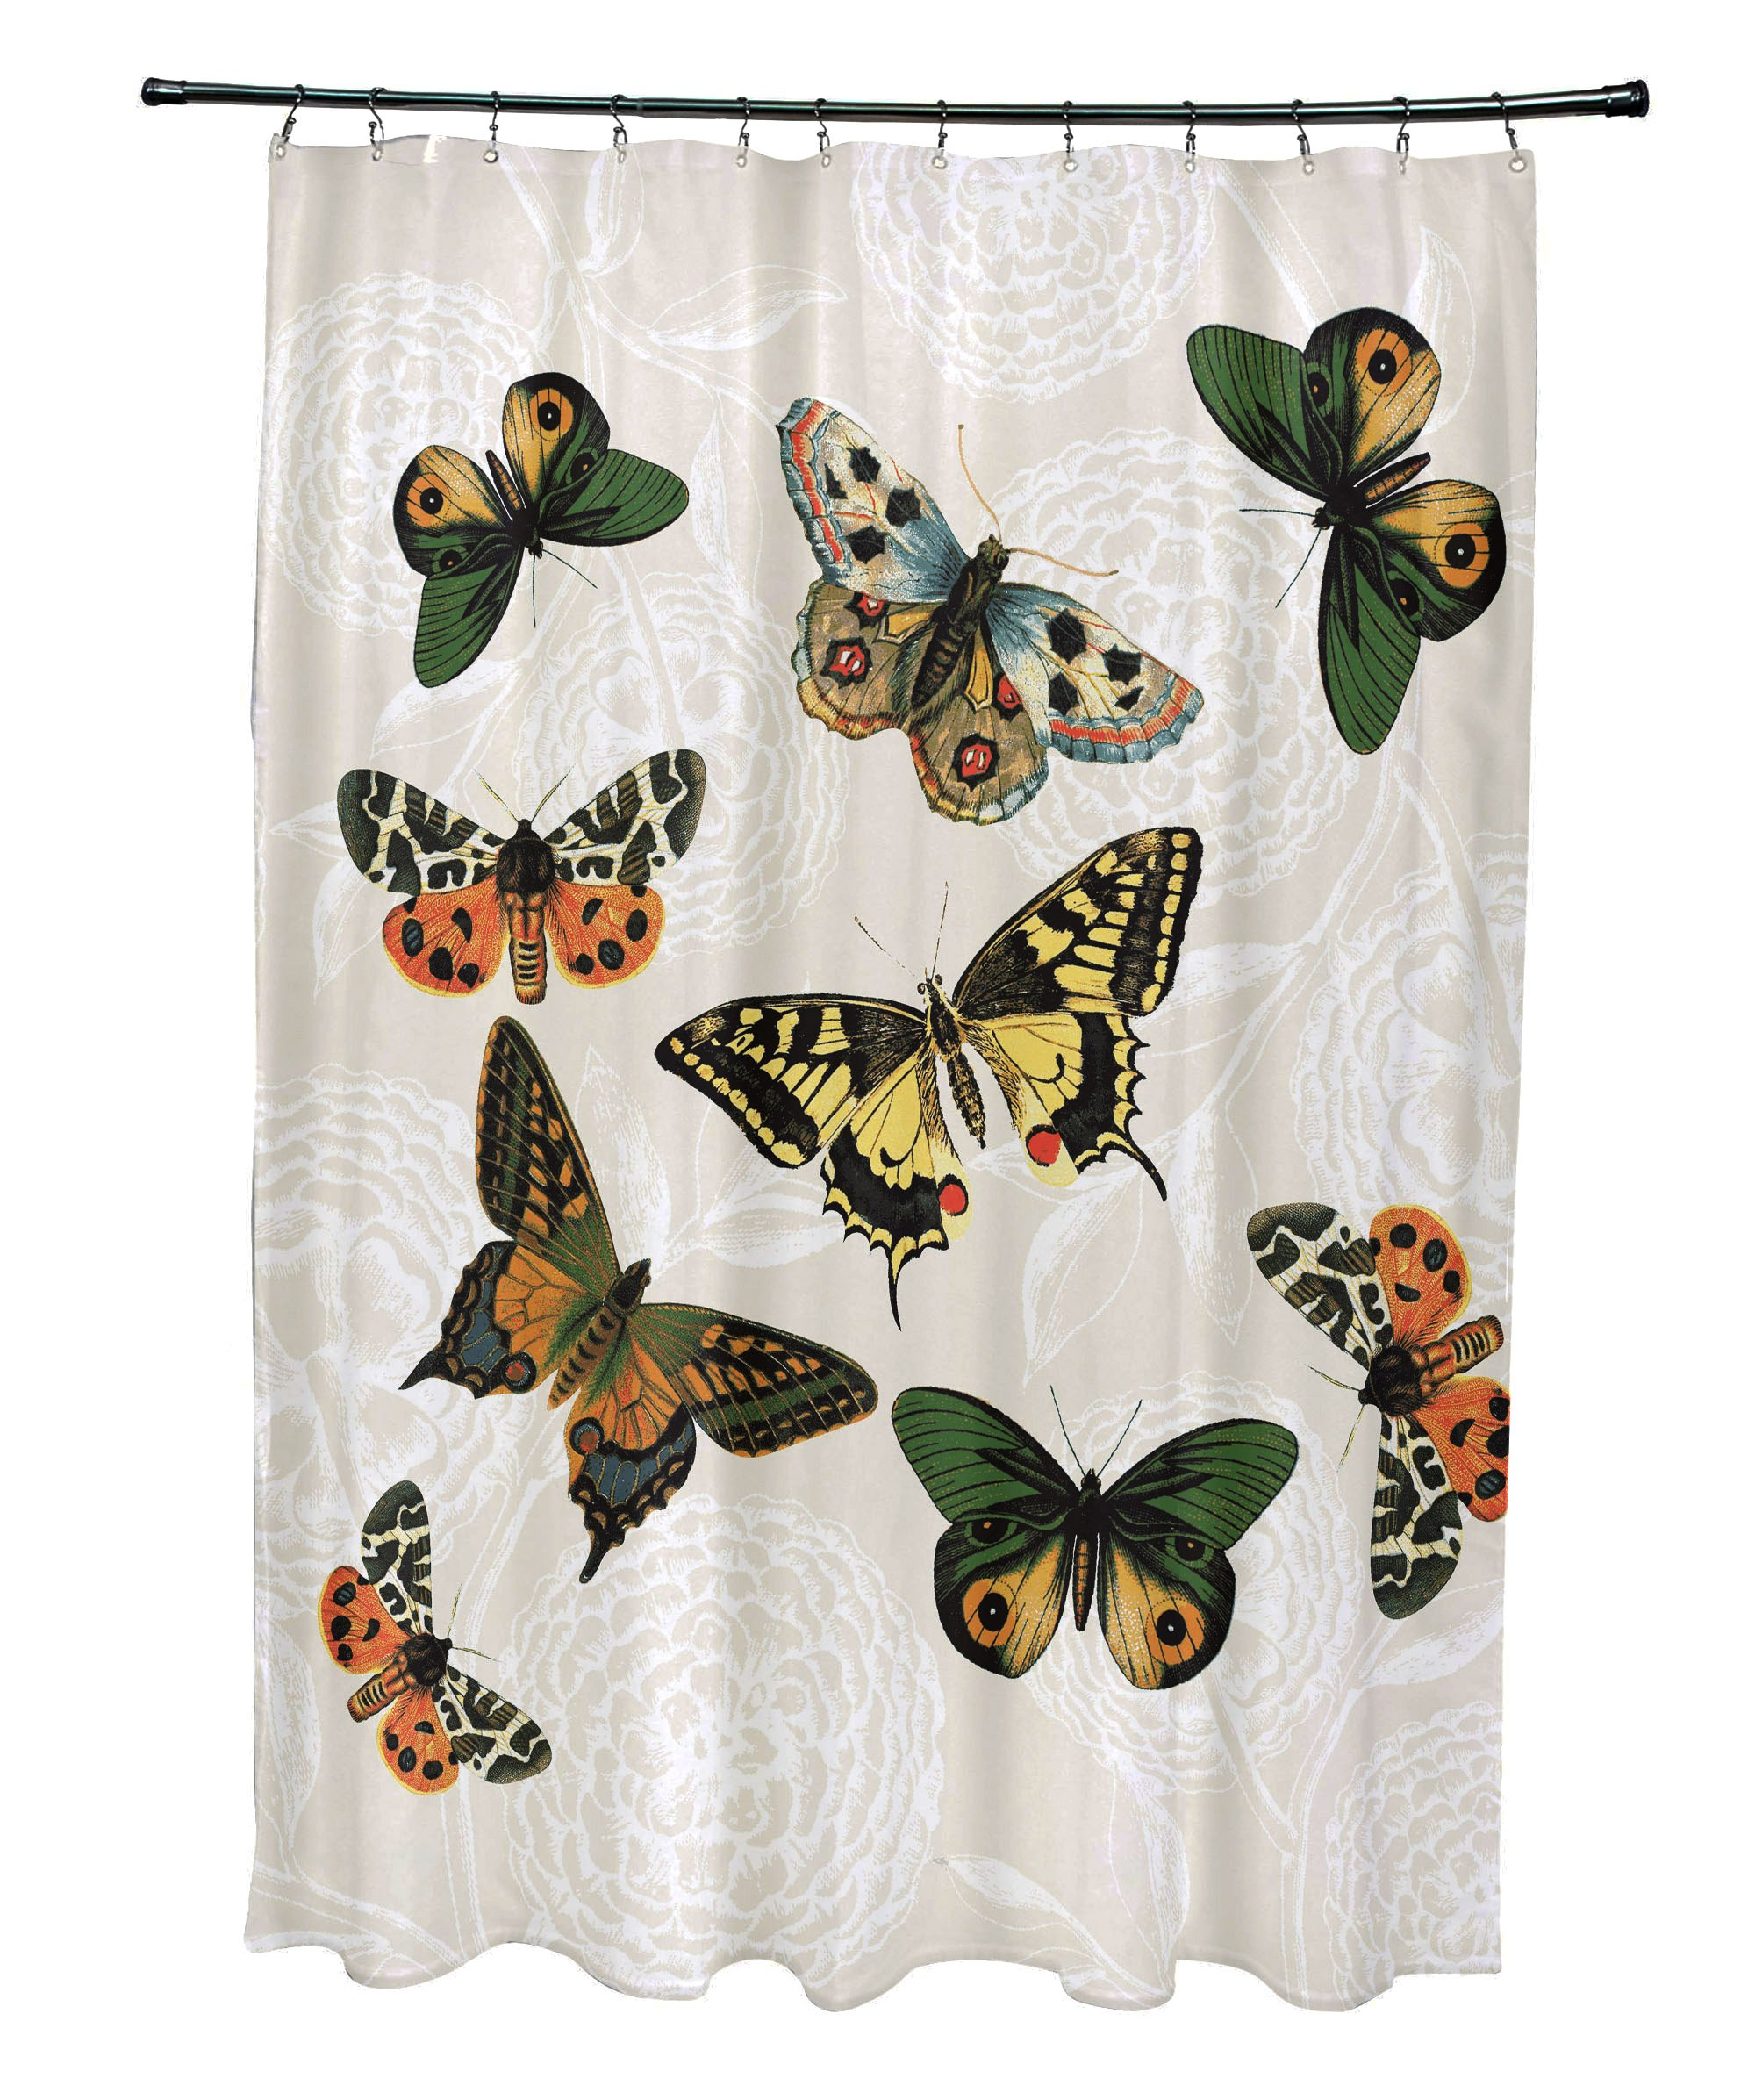 E by design 71 x 74'', Antique Butterflies and Flowers, Animal Print Shower Curtain, Cream